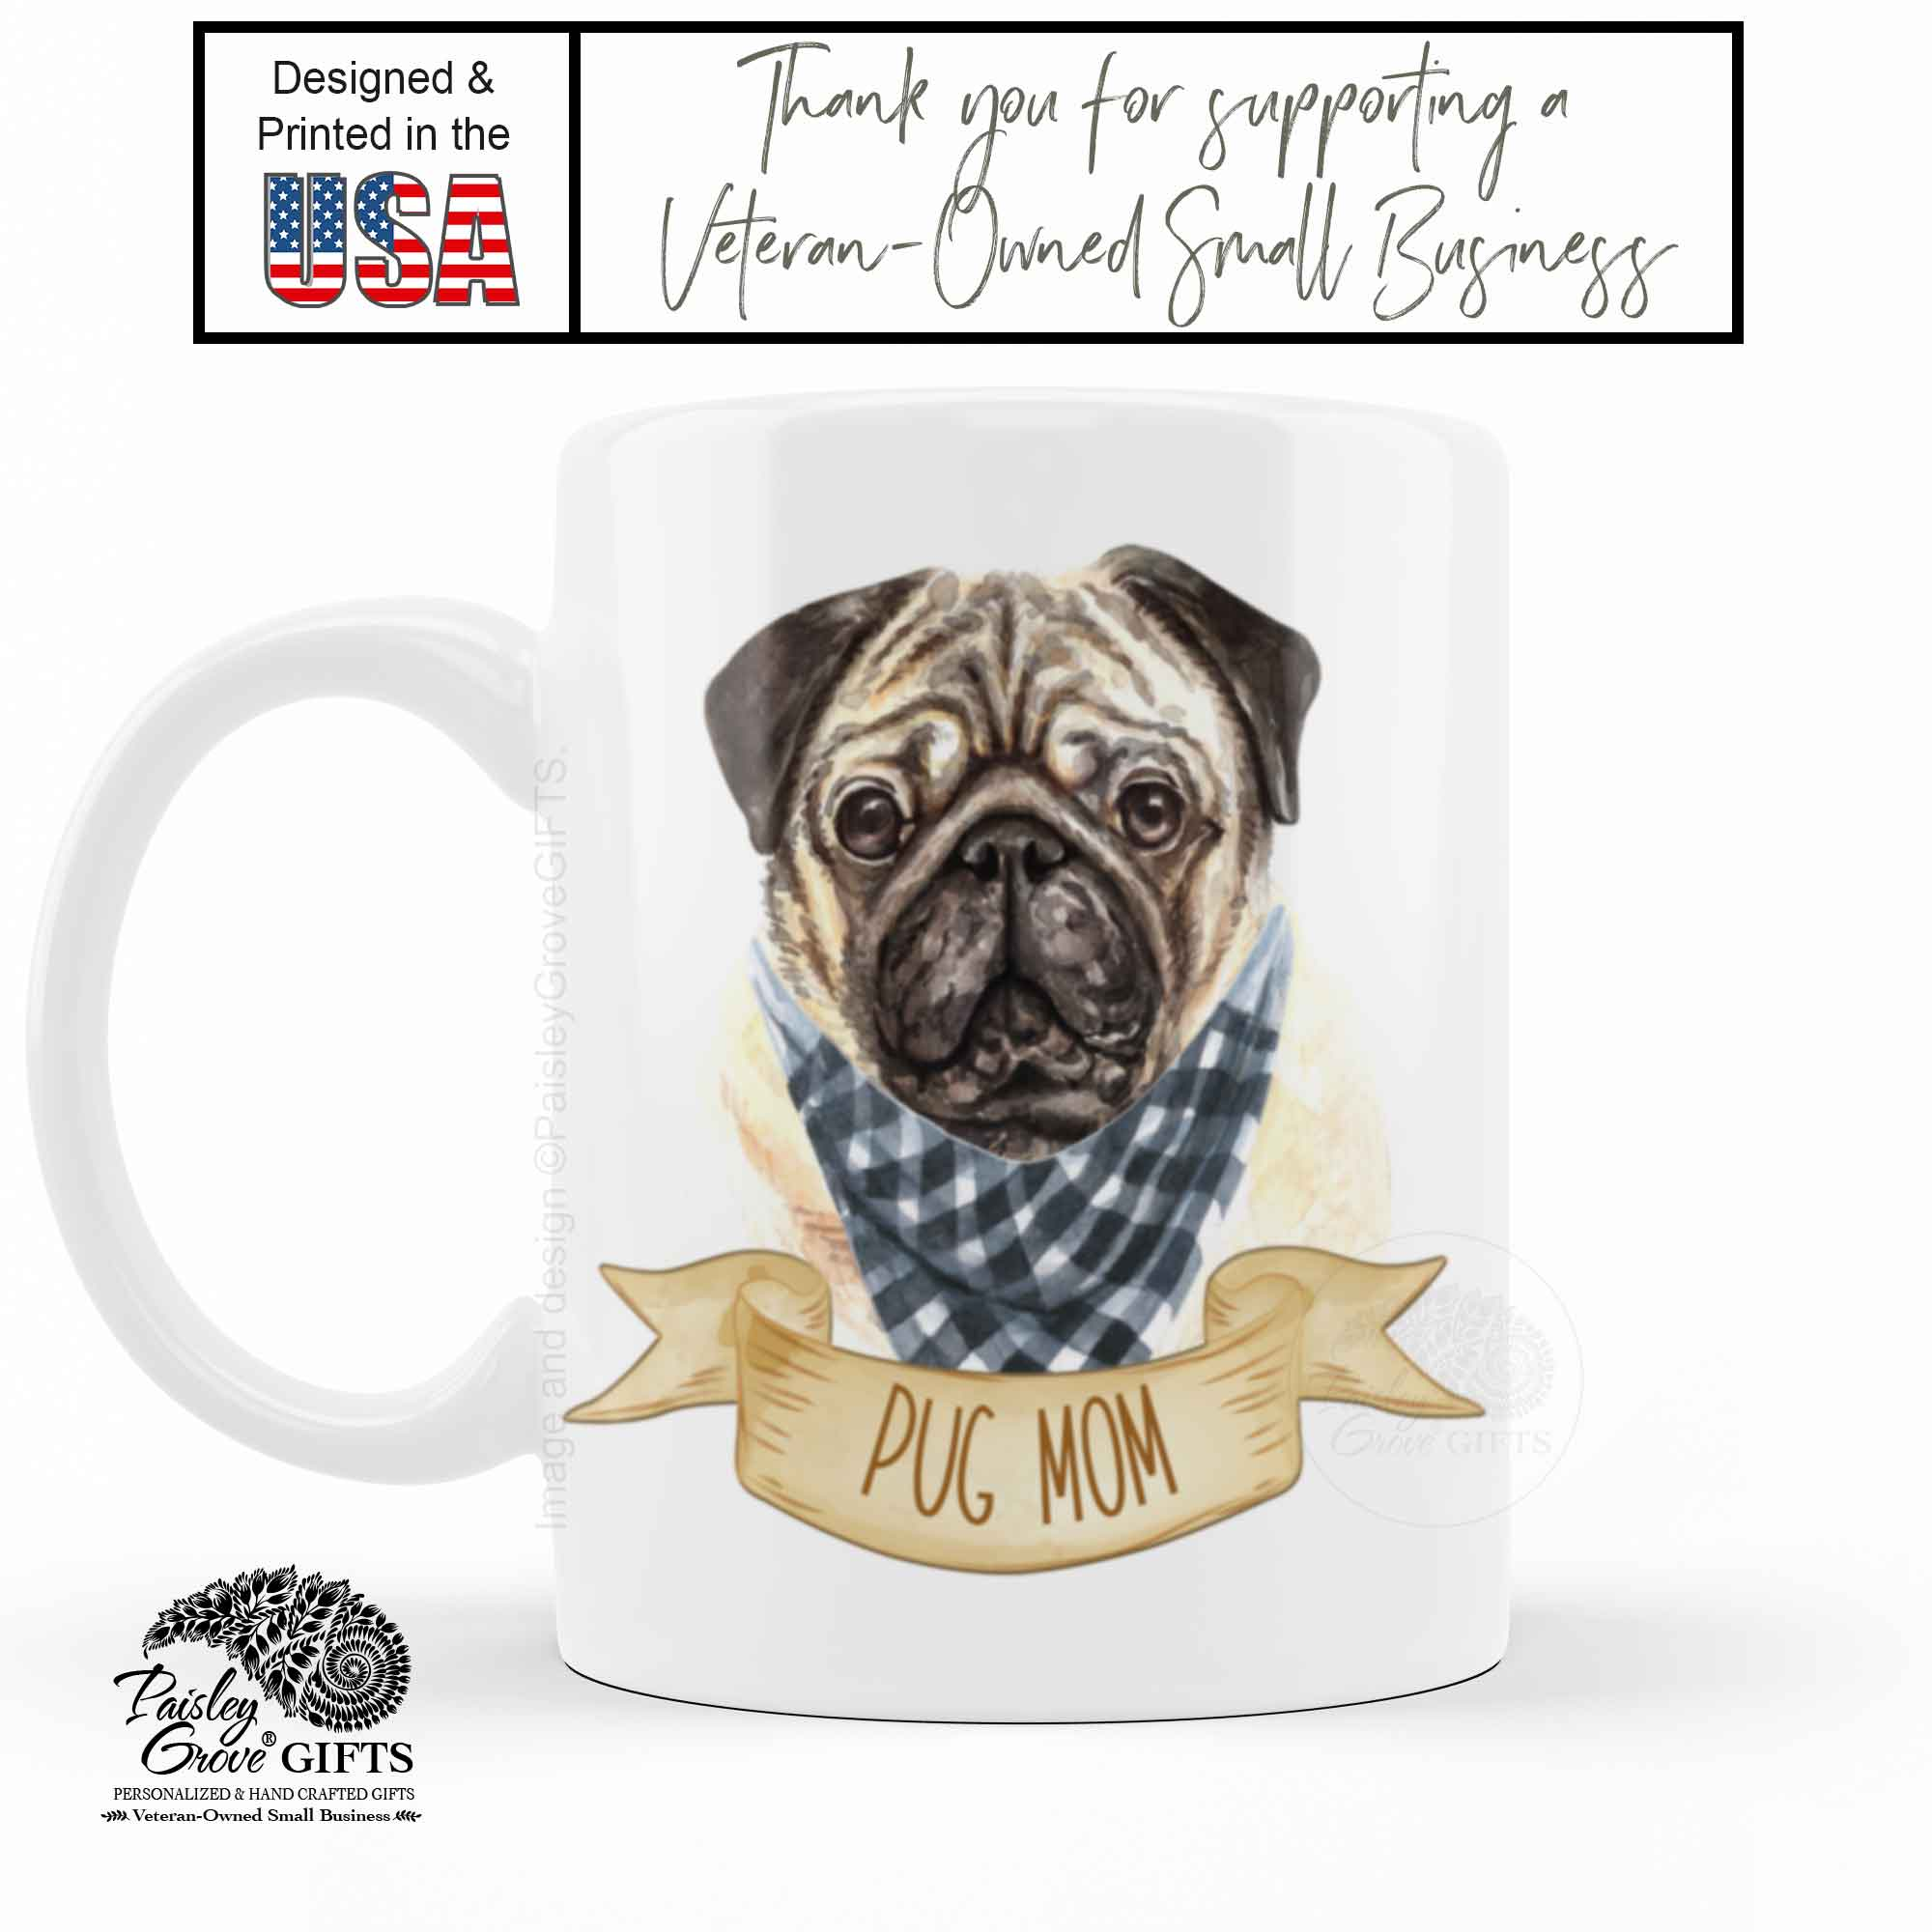 CopyrightPaisleyGroveGIFTS P009c1c3 Pug Mom coffee cup with cute pug in bandana is printed in the usa